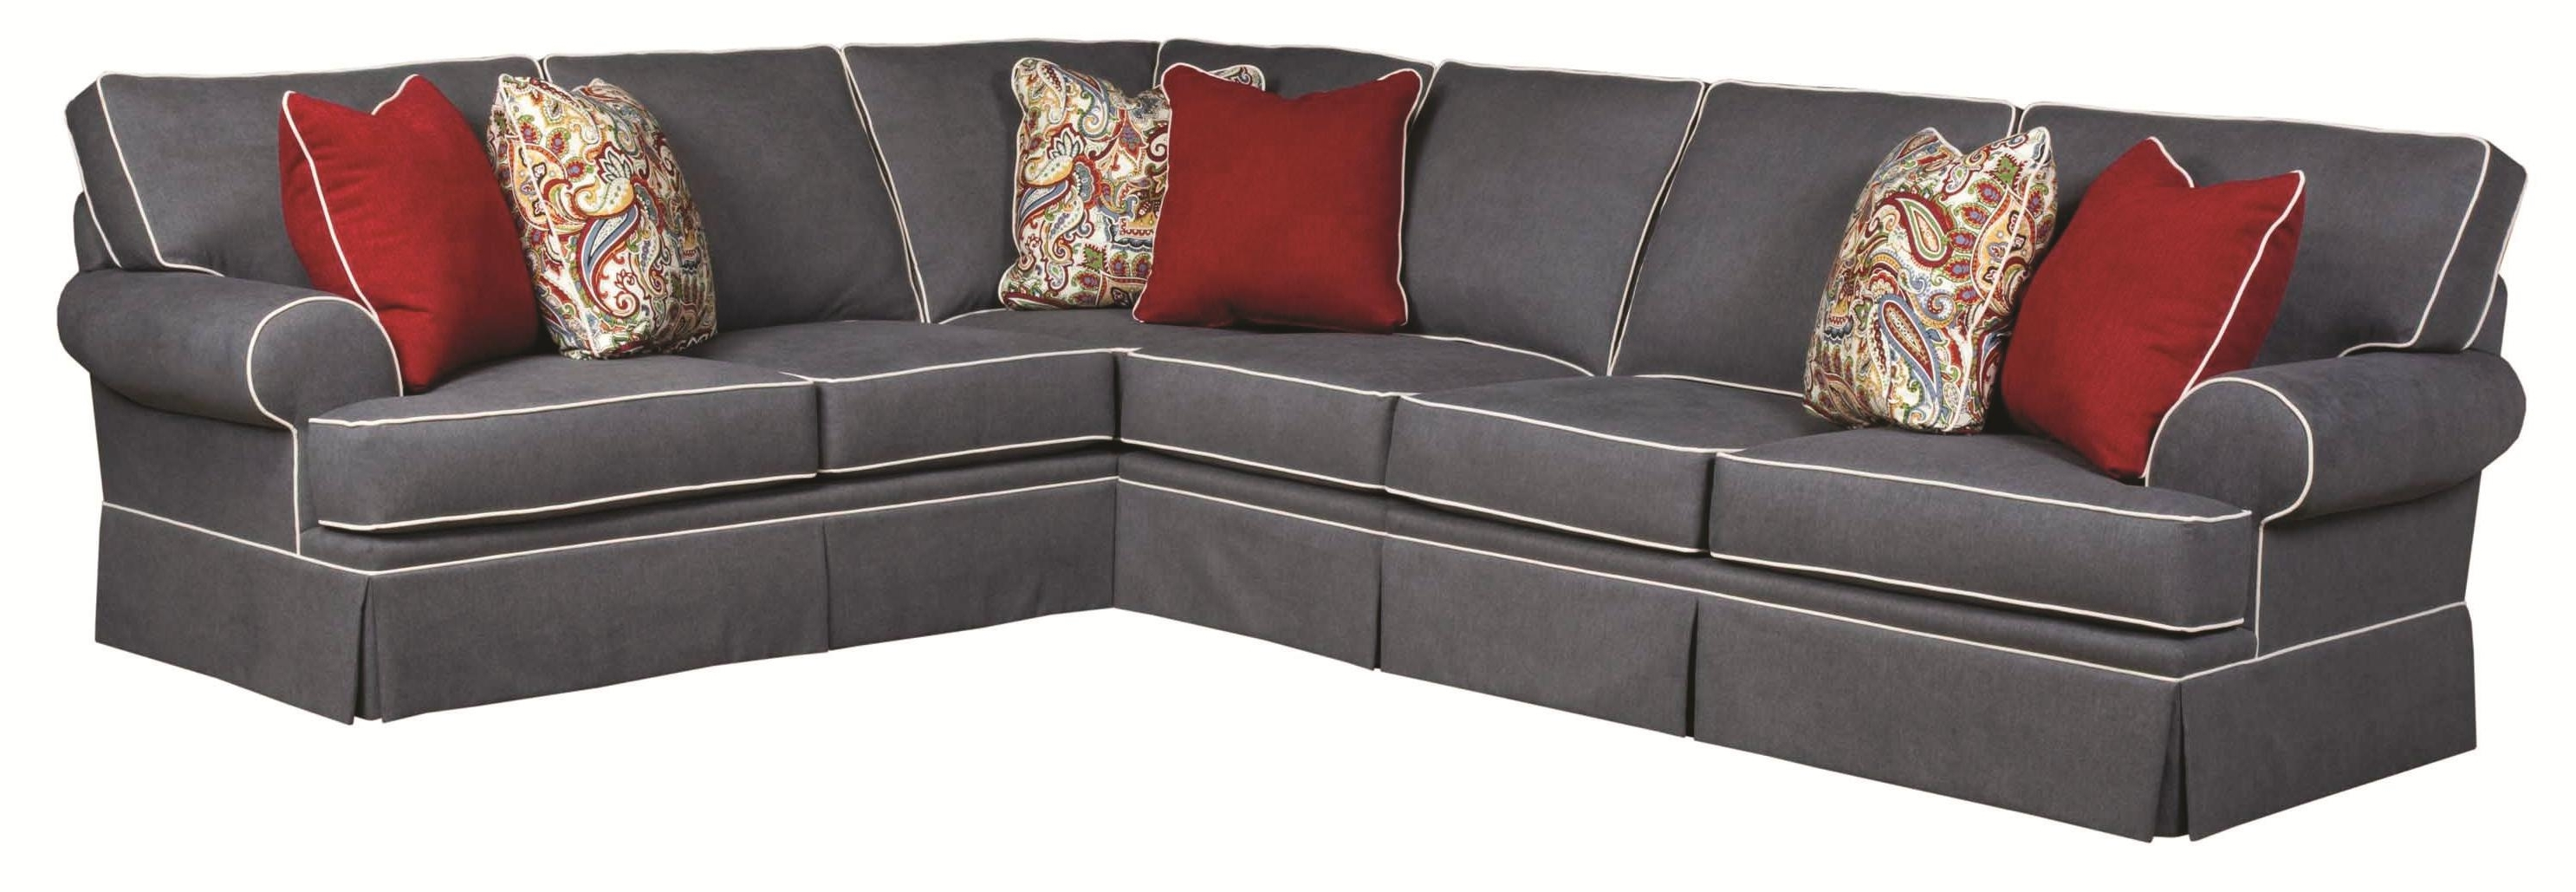 Broyhill Furniture Emily Traditional 3 Piece Sectional Sofa With With Latest Sectional Sofas At Broyhill (View 3 of 20)